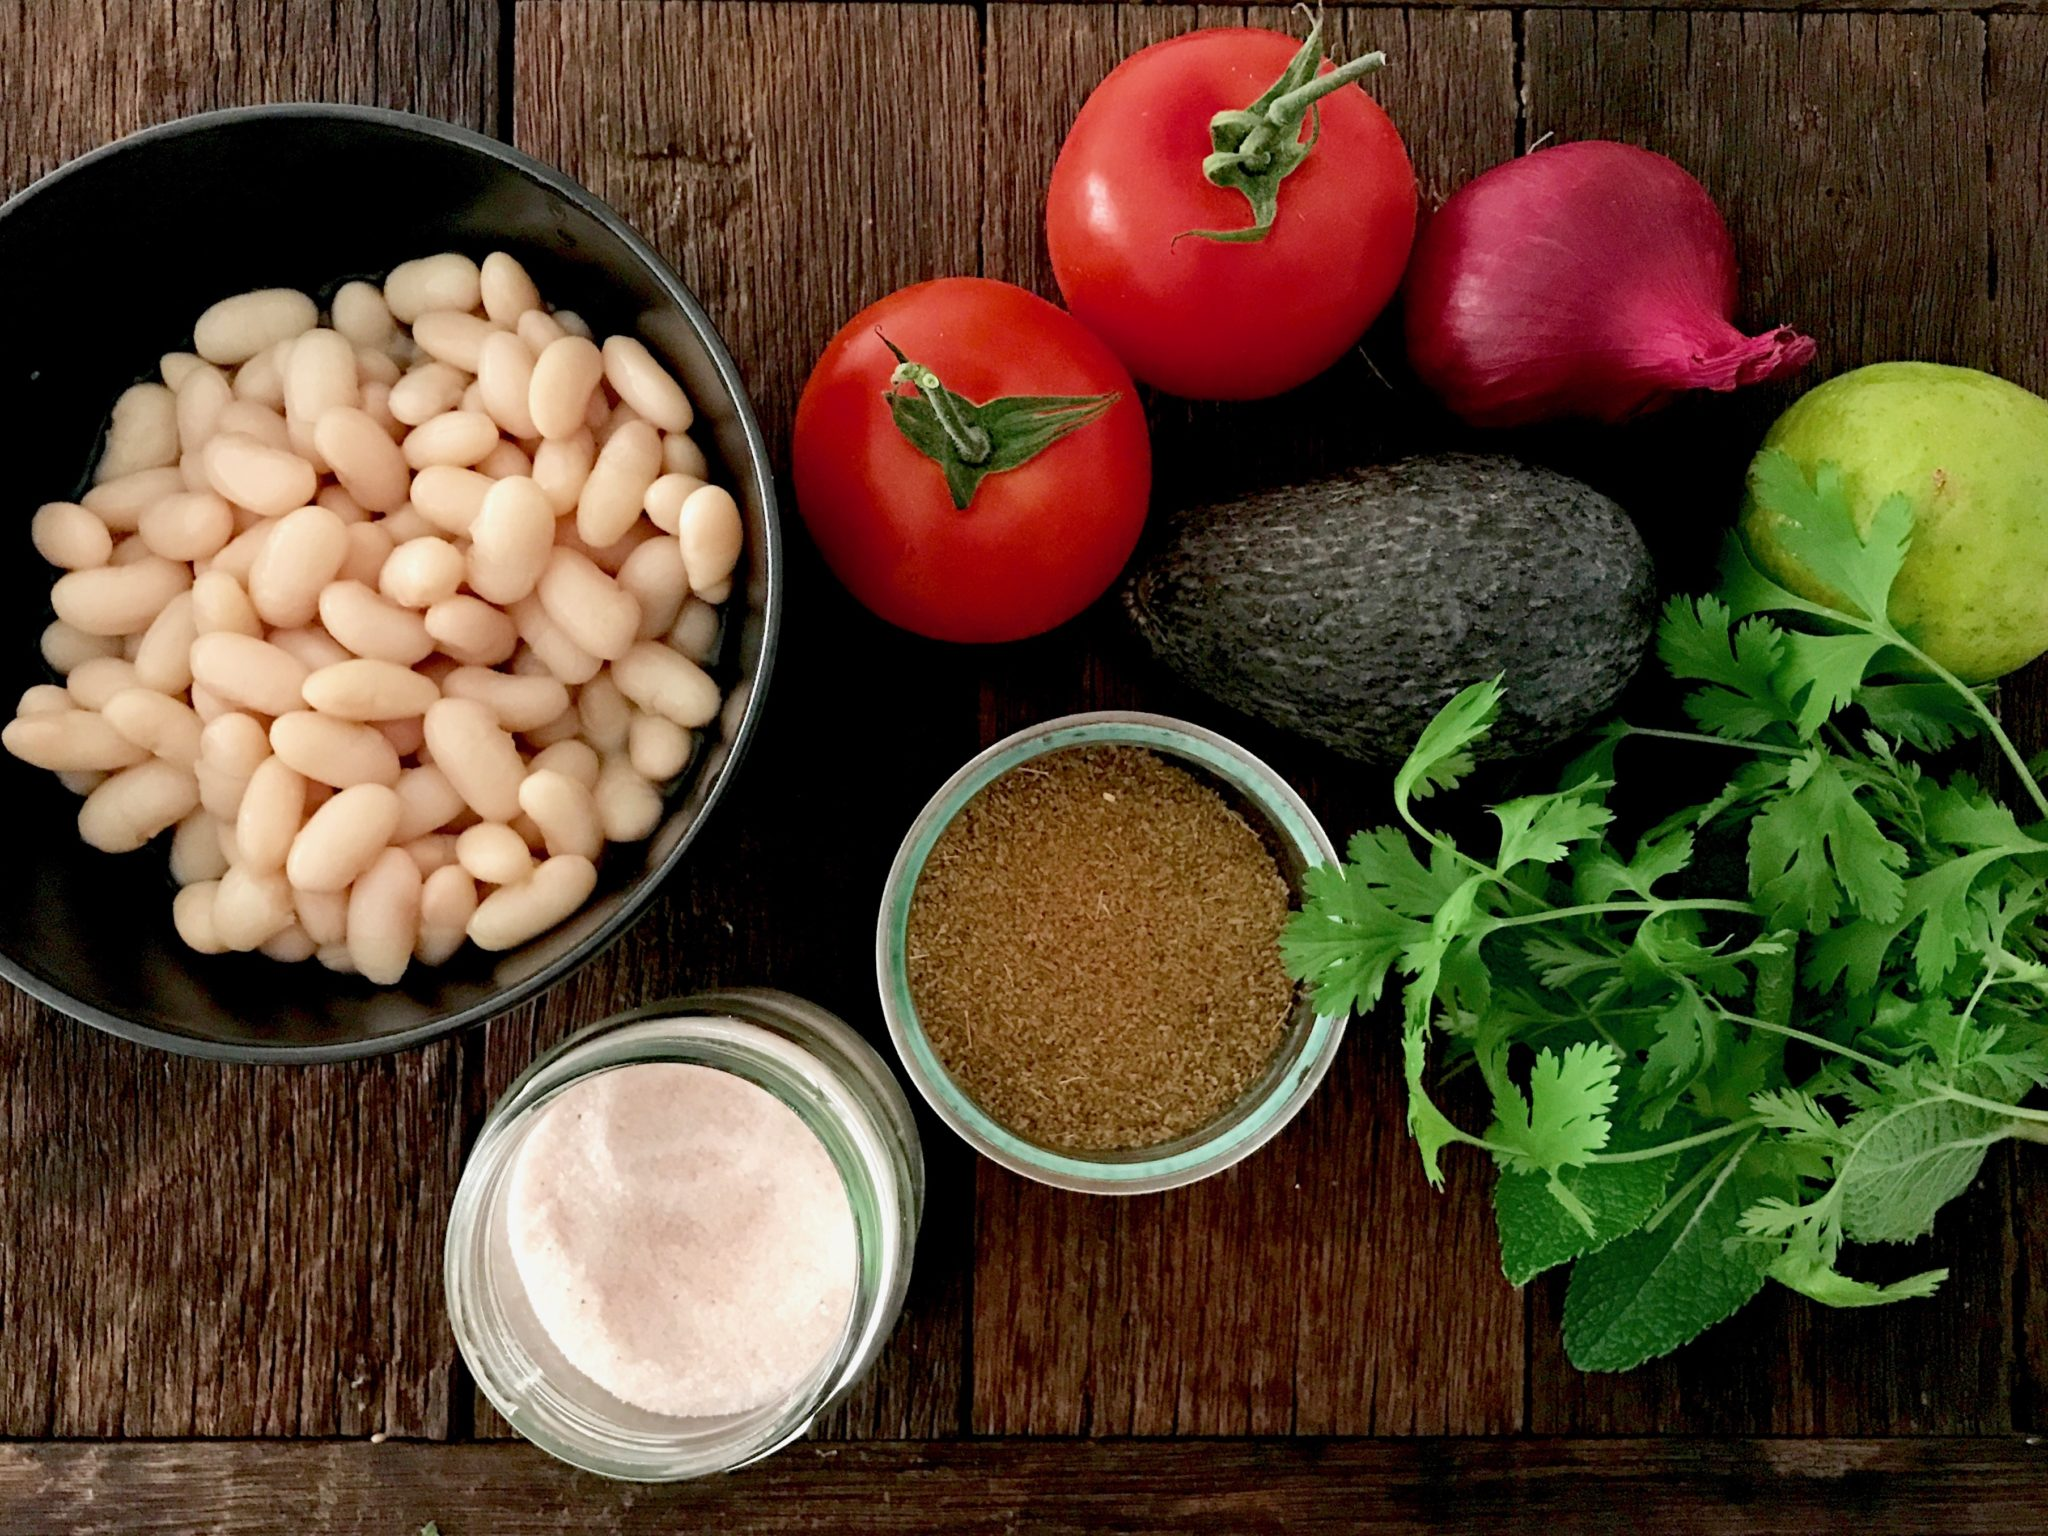 the ingredients for fermented bean salsa